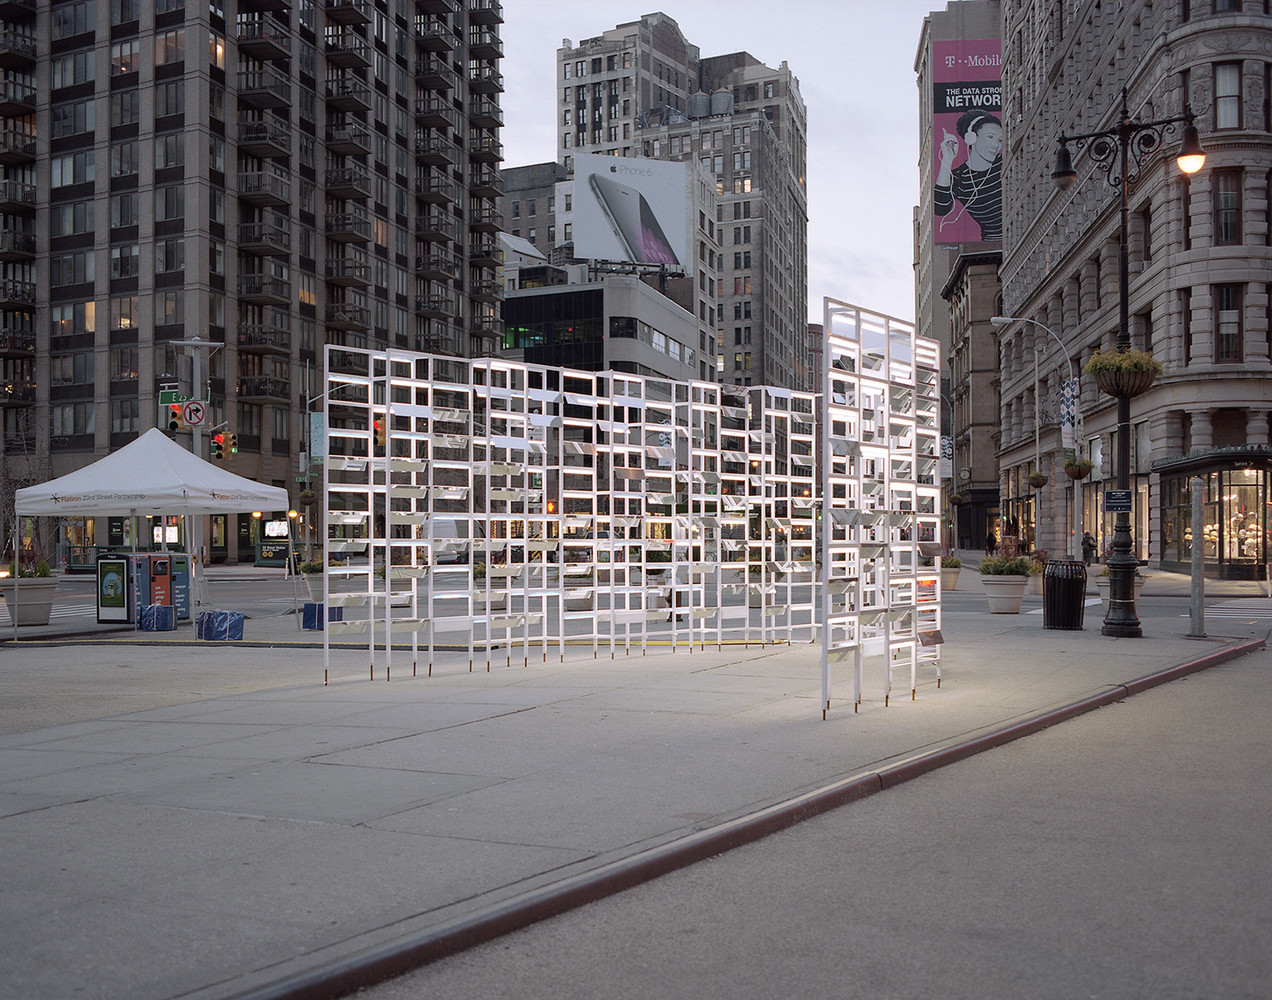 inaba frames empire state building with animated new york light installation naho